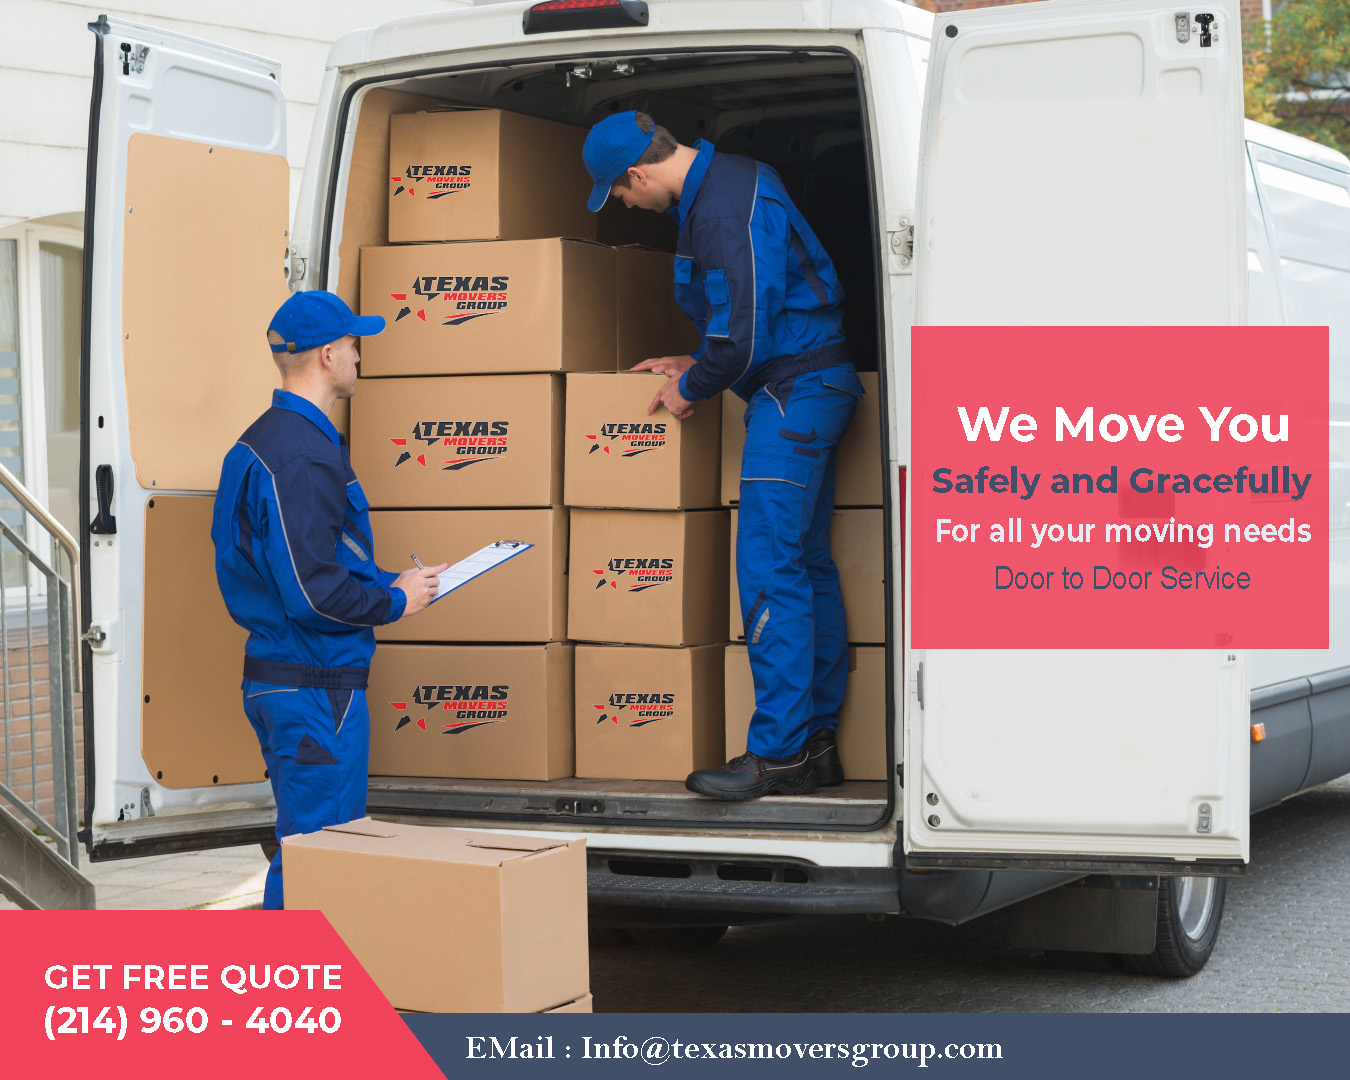 Hire Best Company for Moving from Dallas to Pittsburgh